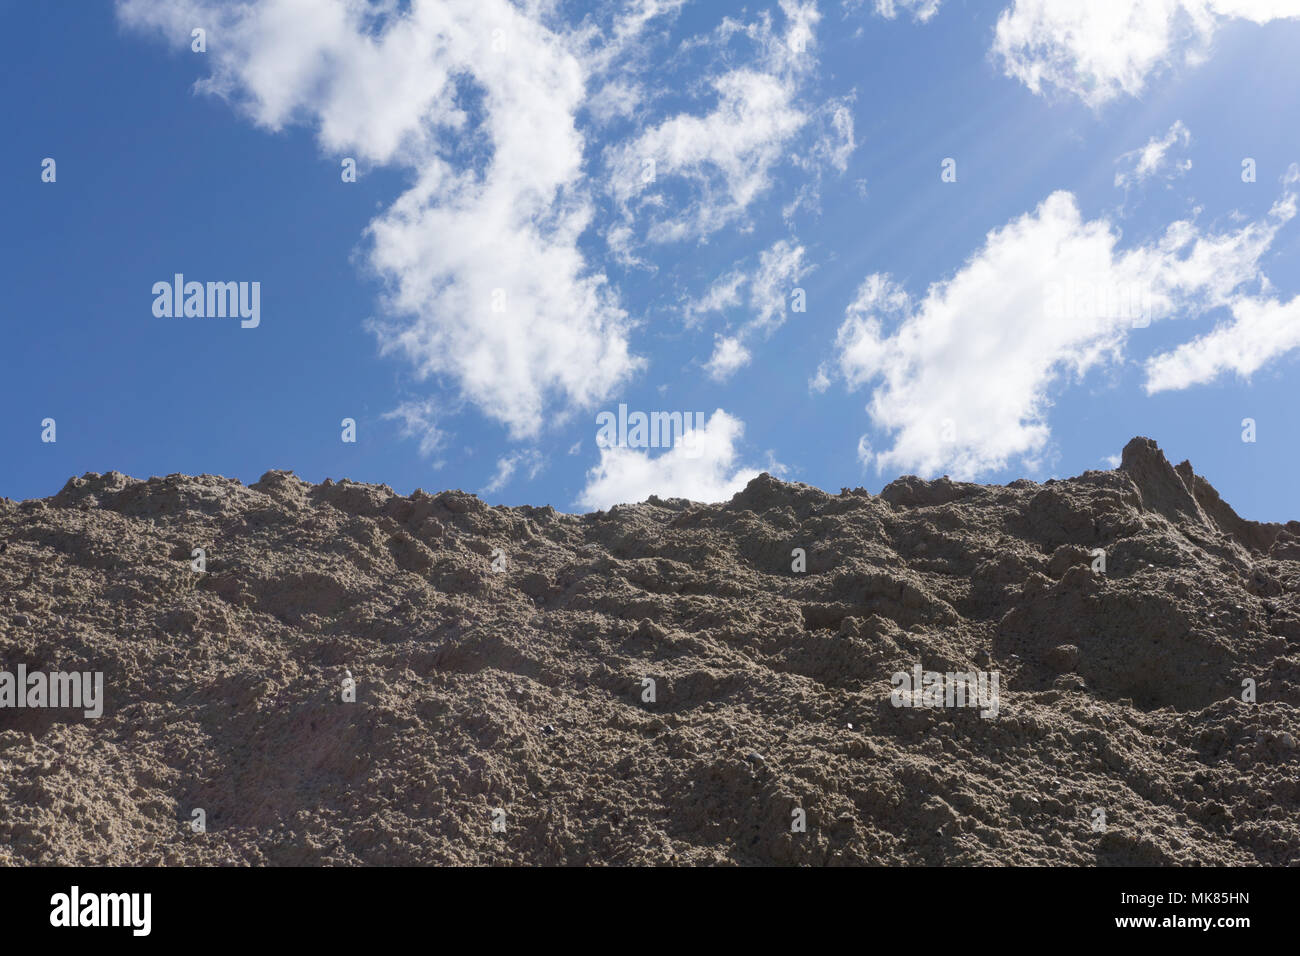 Rugged mountain against a blue sky. South Sinai desert, Egypt - Stock Image